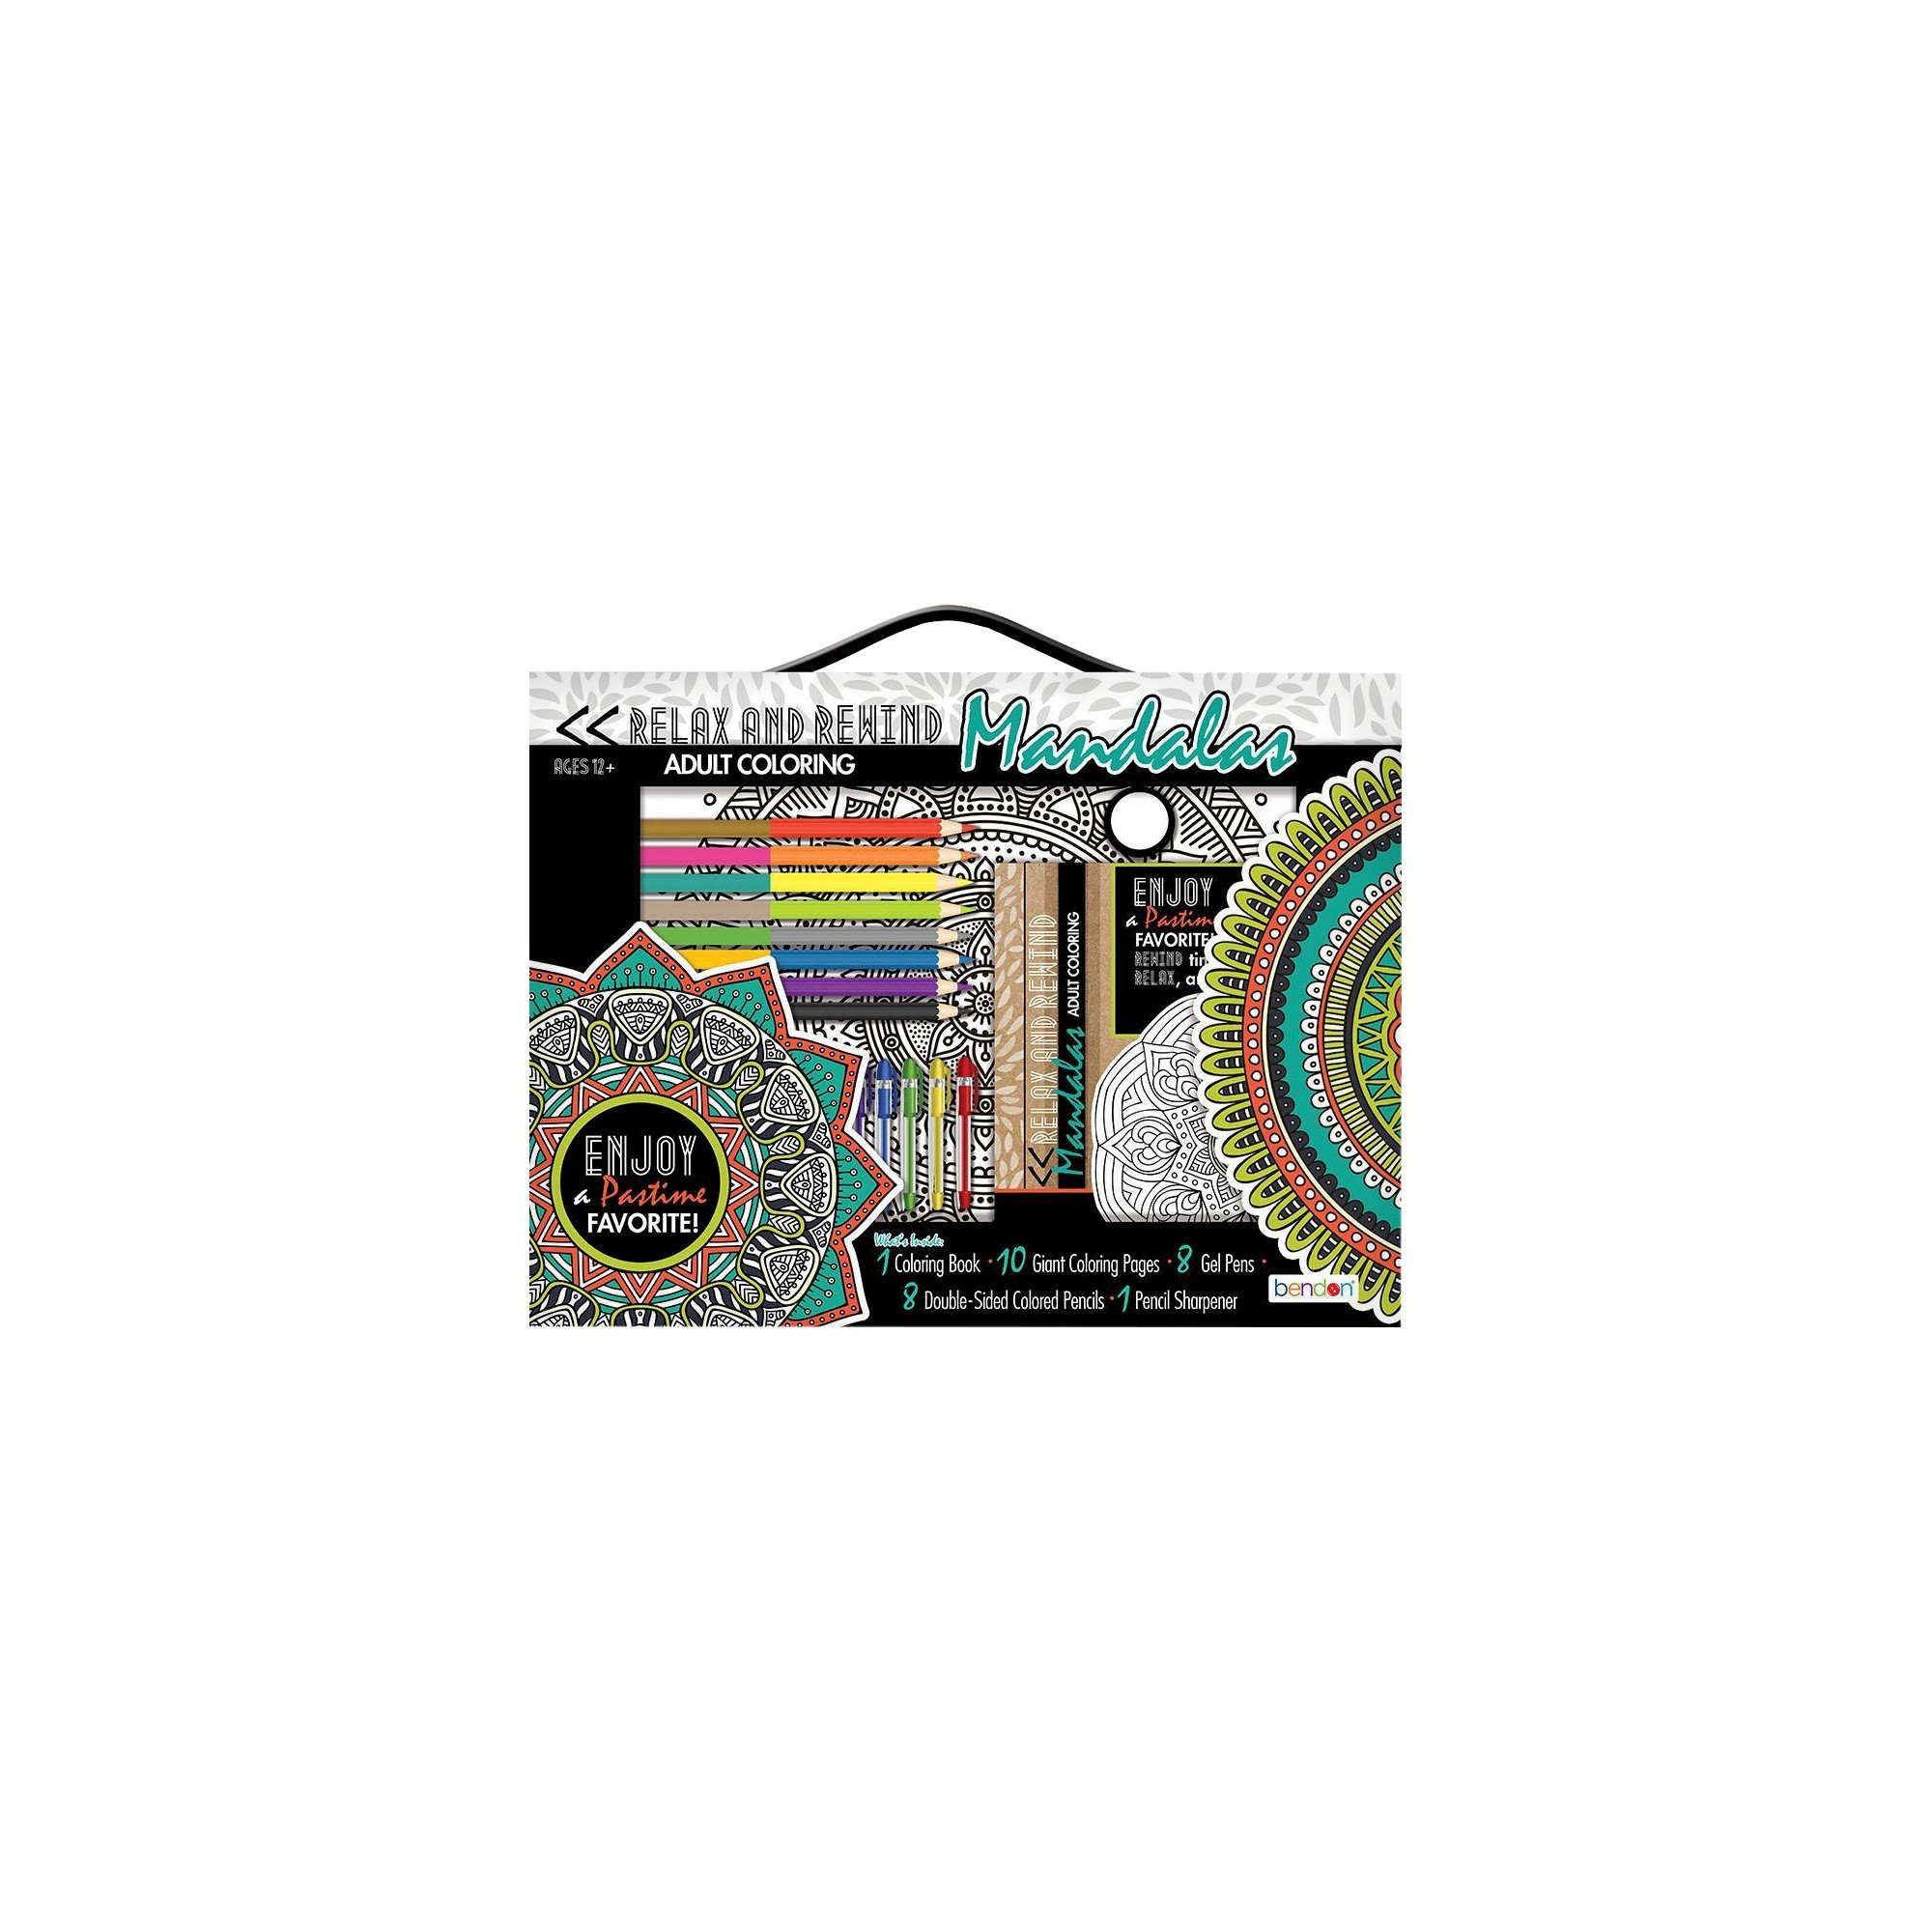 Bendon Adult Coloring Book Kit